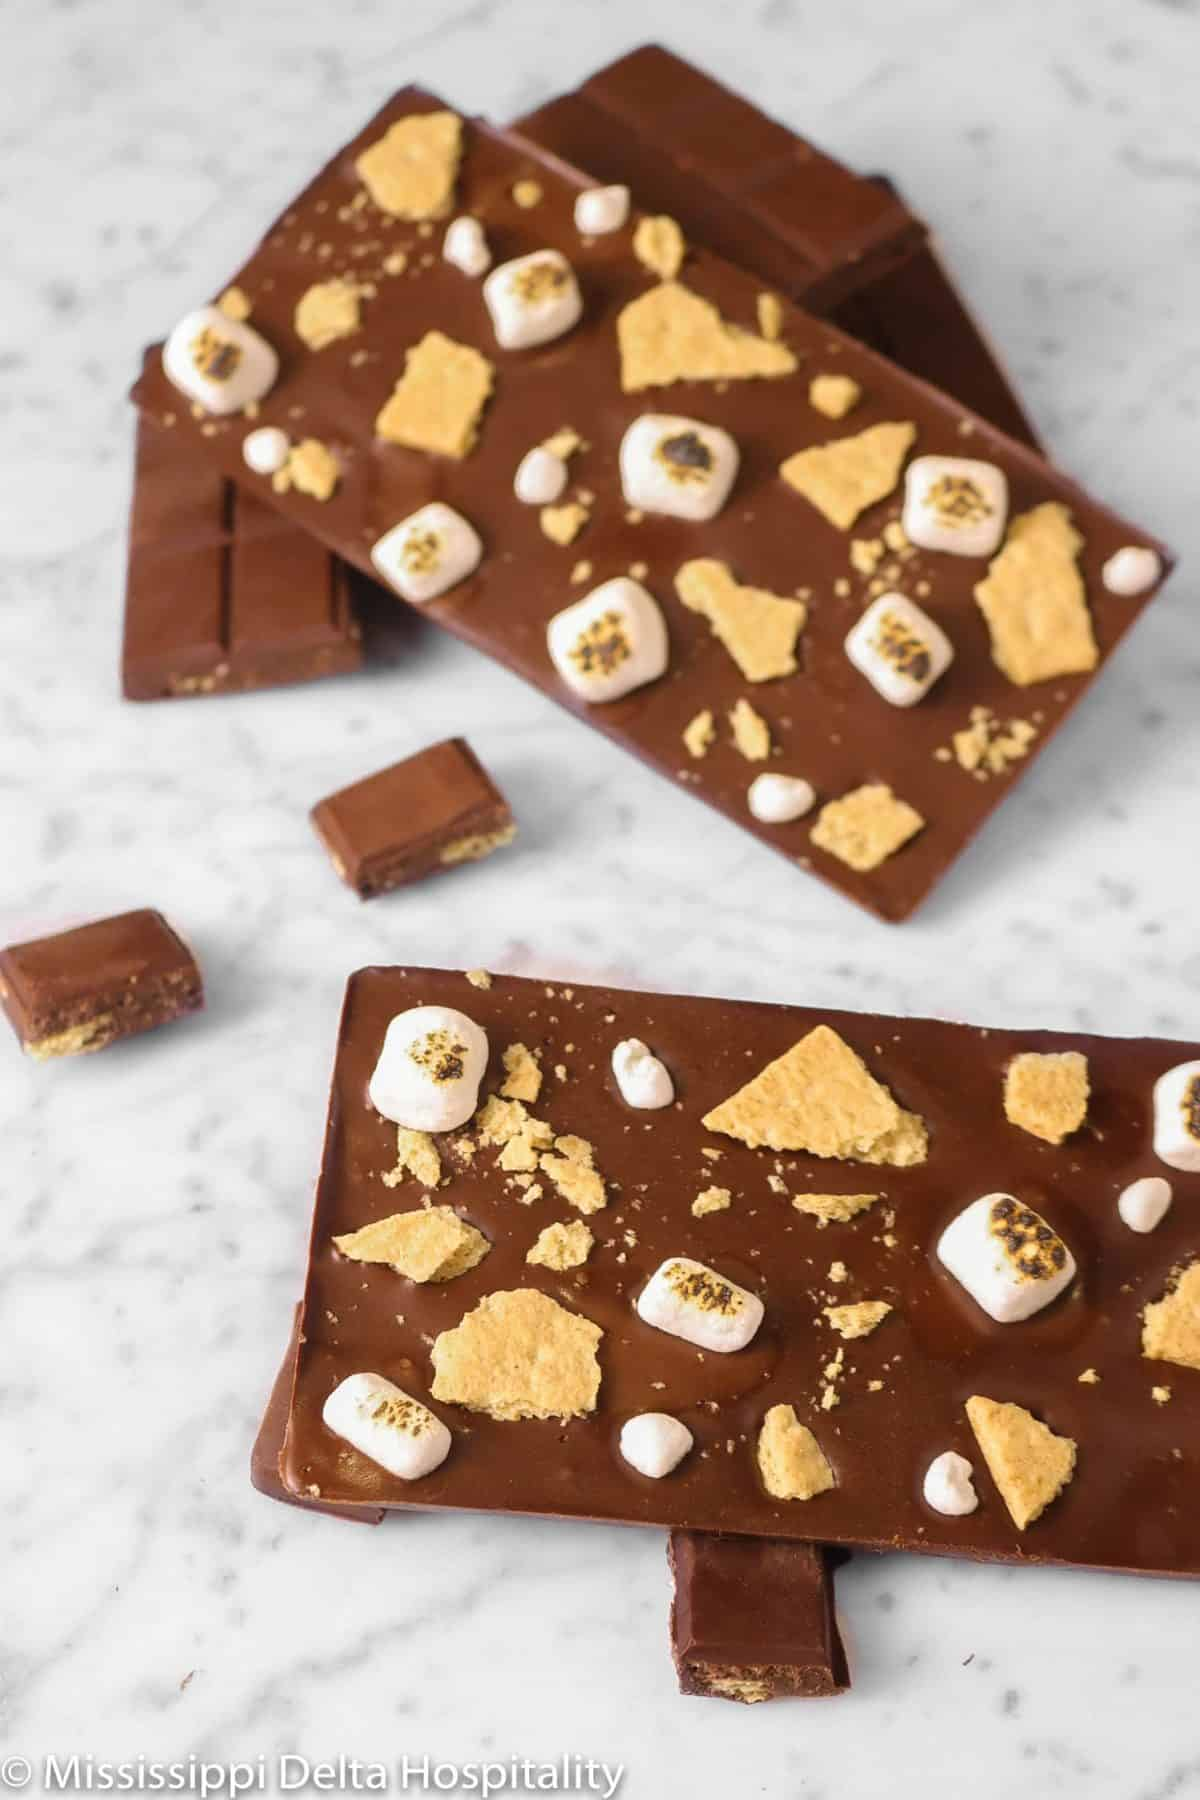 four homemade chocolate bars with marshmallows and graham crackers with one broken up